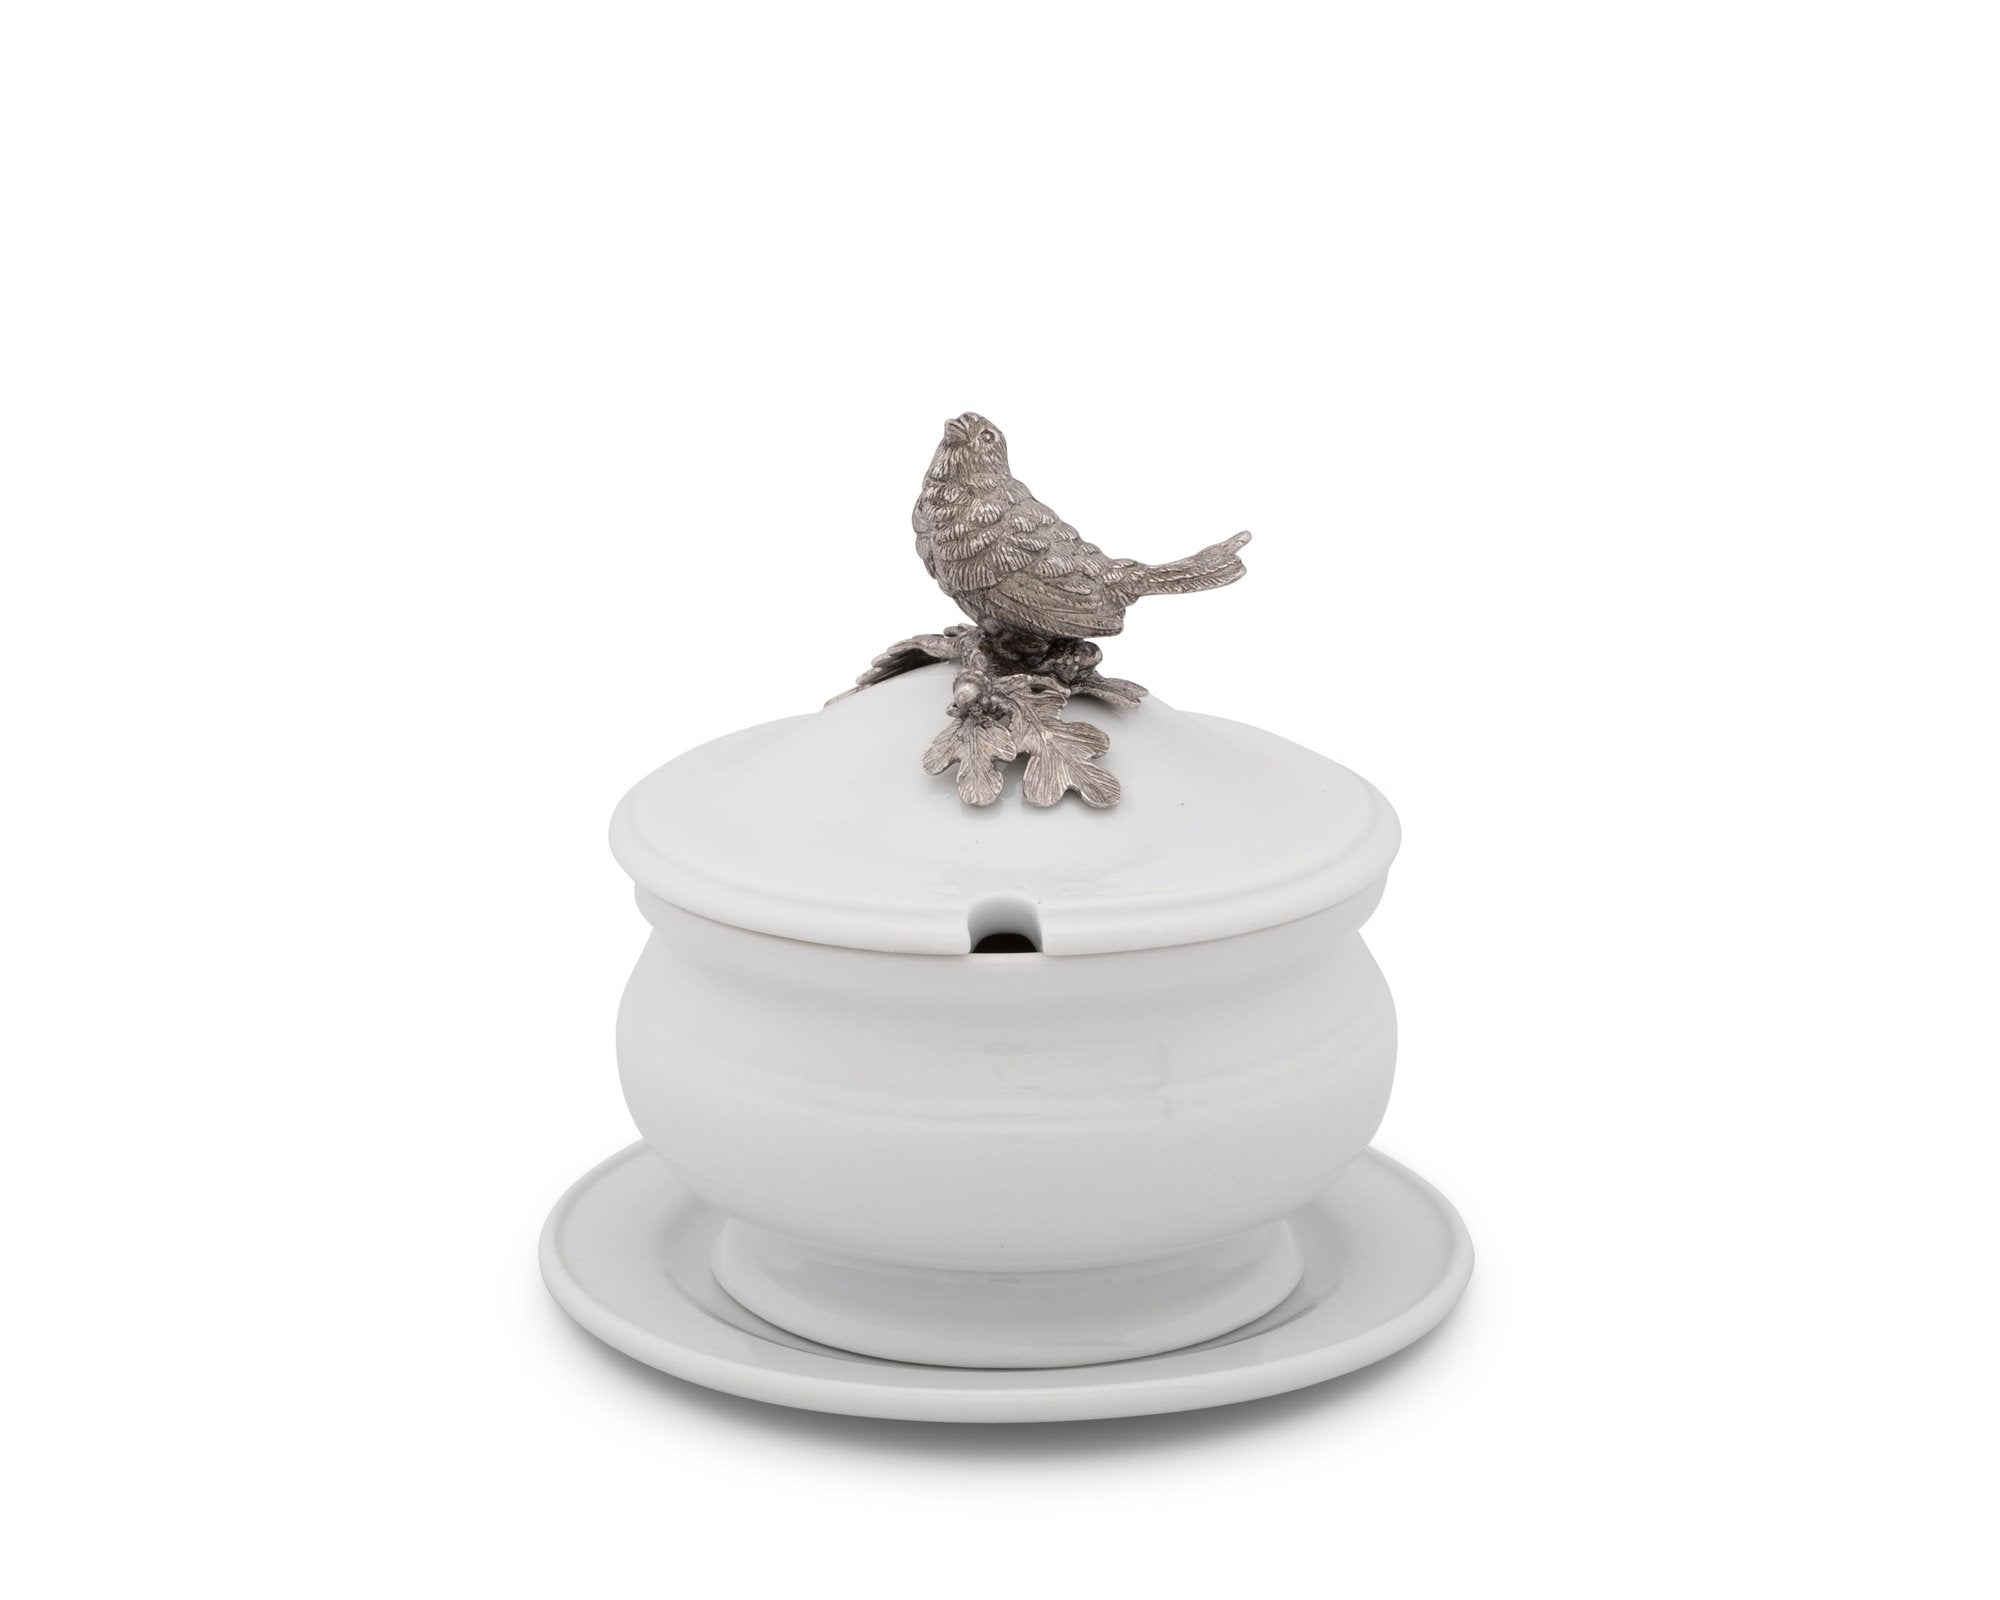 Porcelain Lidded Songbird Bowl